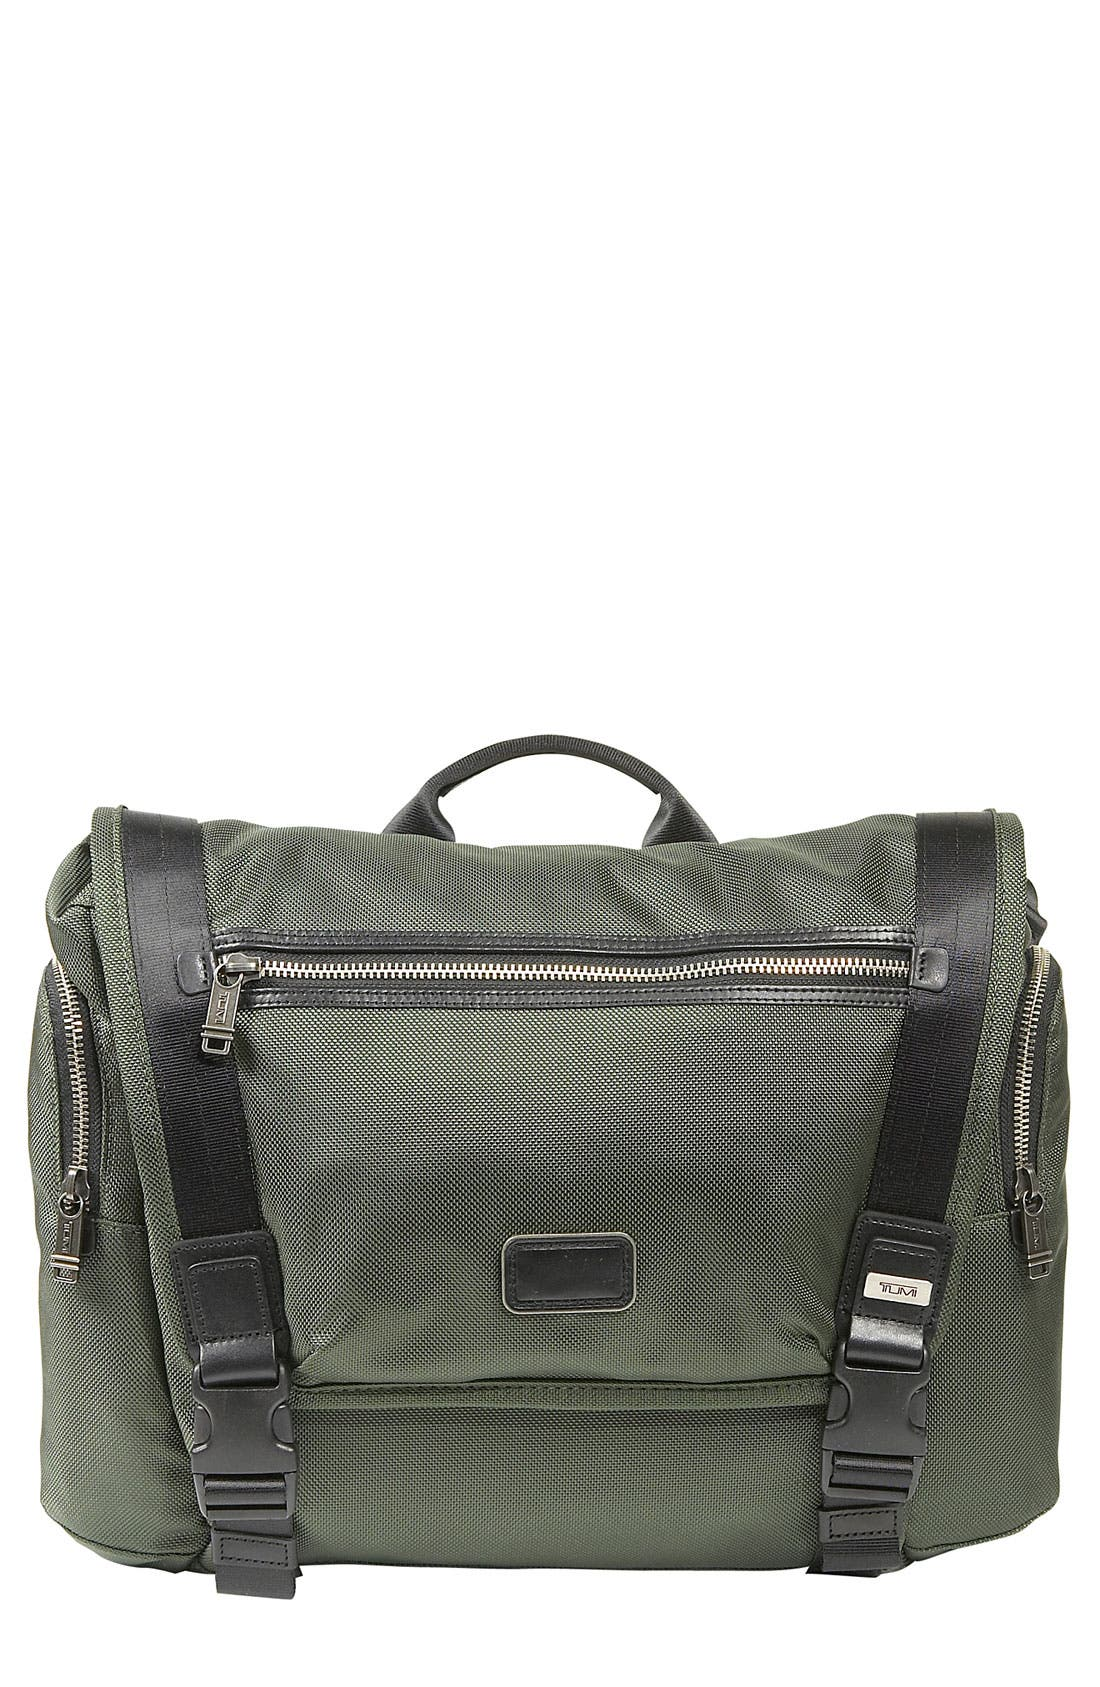 Alternate Image 1 Selected - Tumi 'Alpha Bravo - Benning' Deluxe Messenger Bag